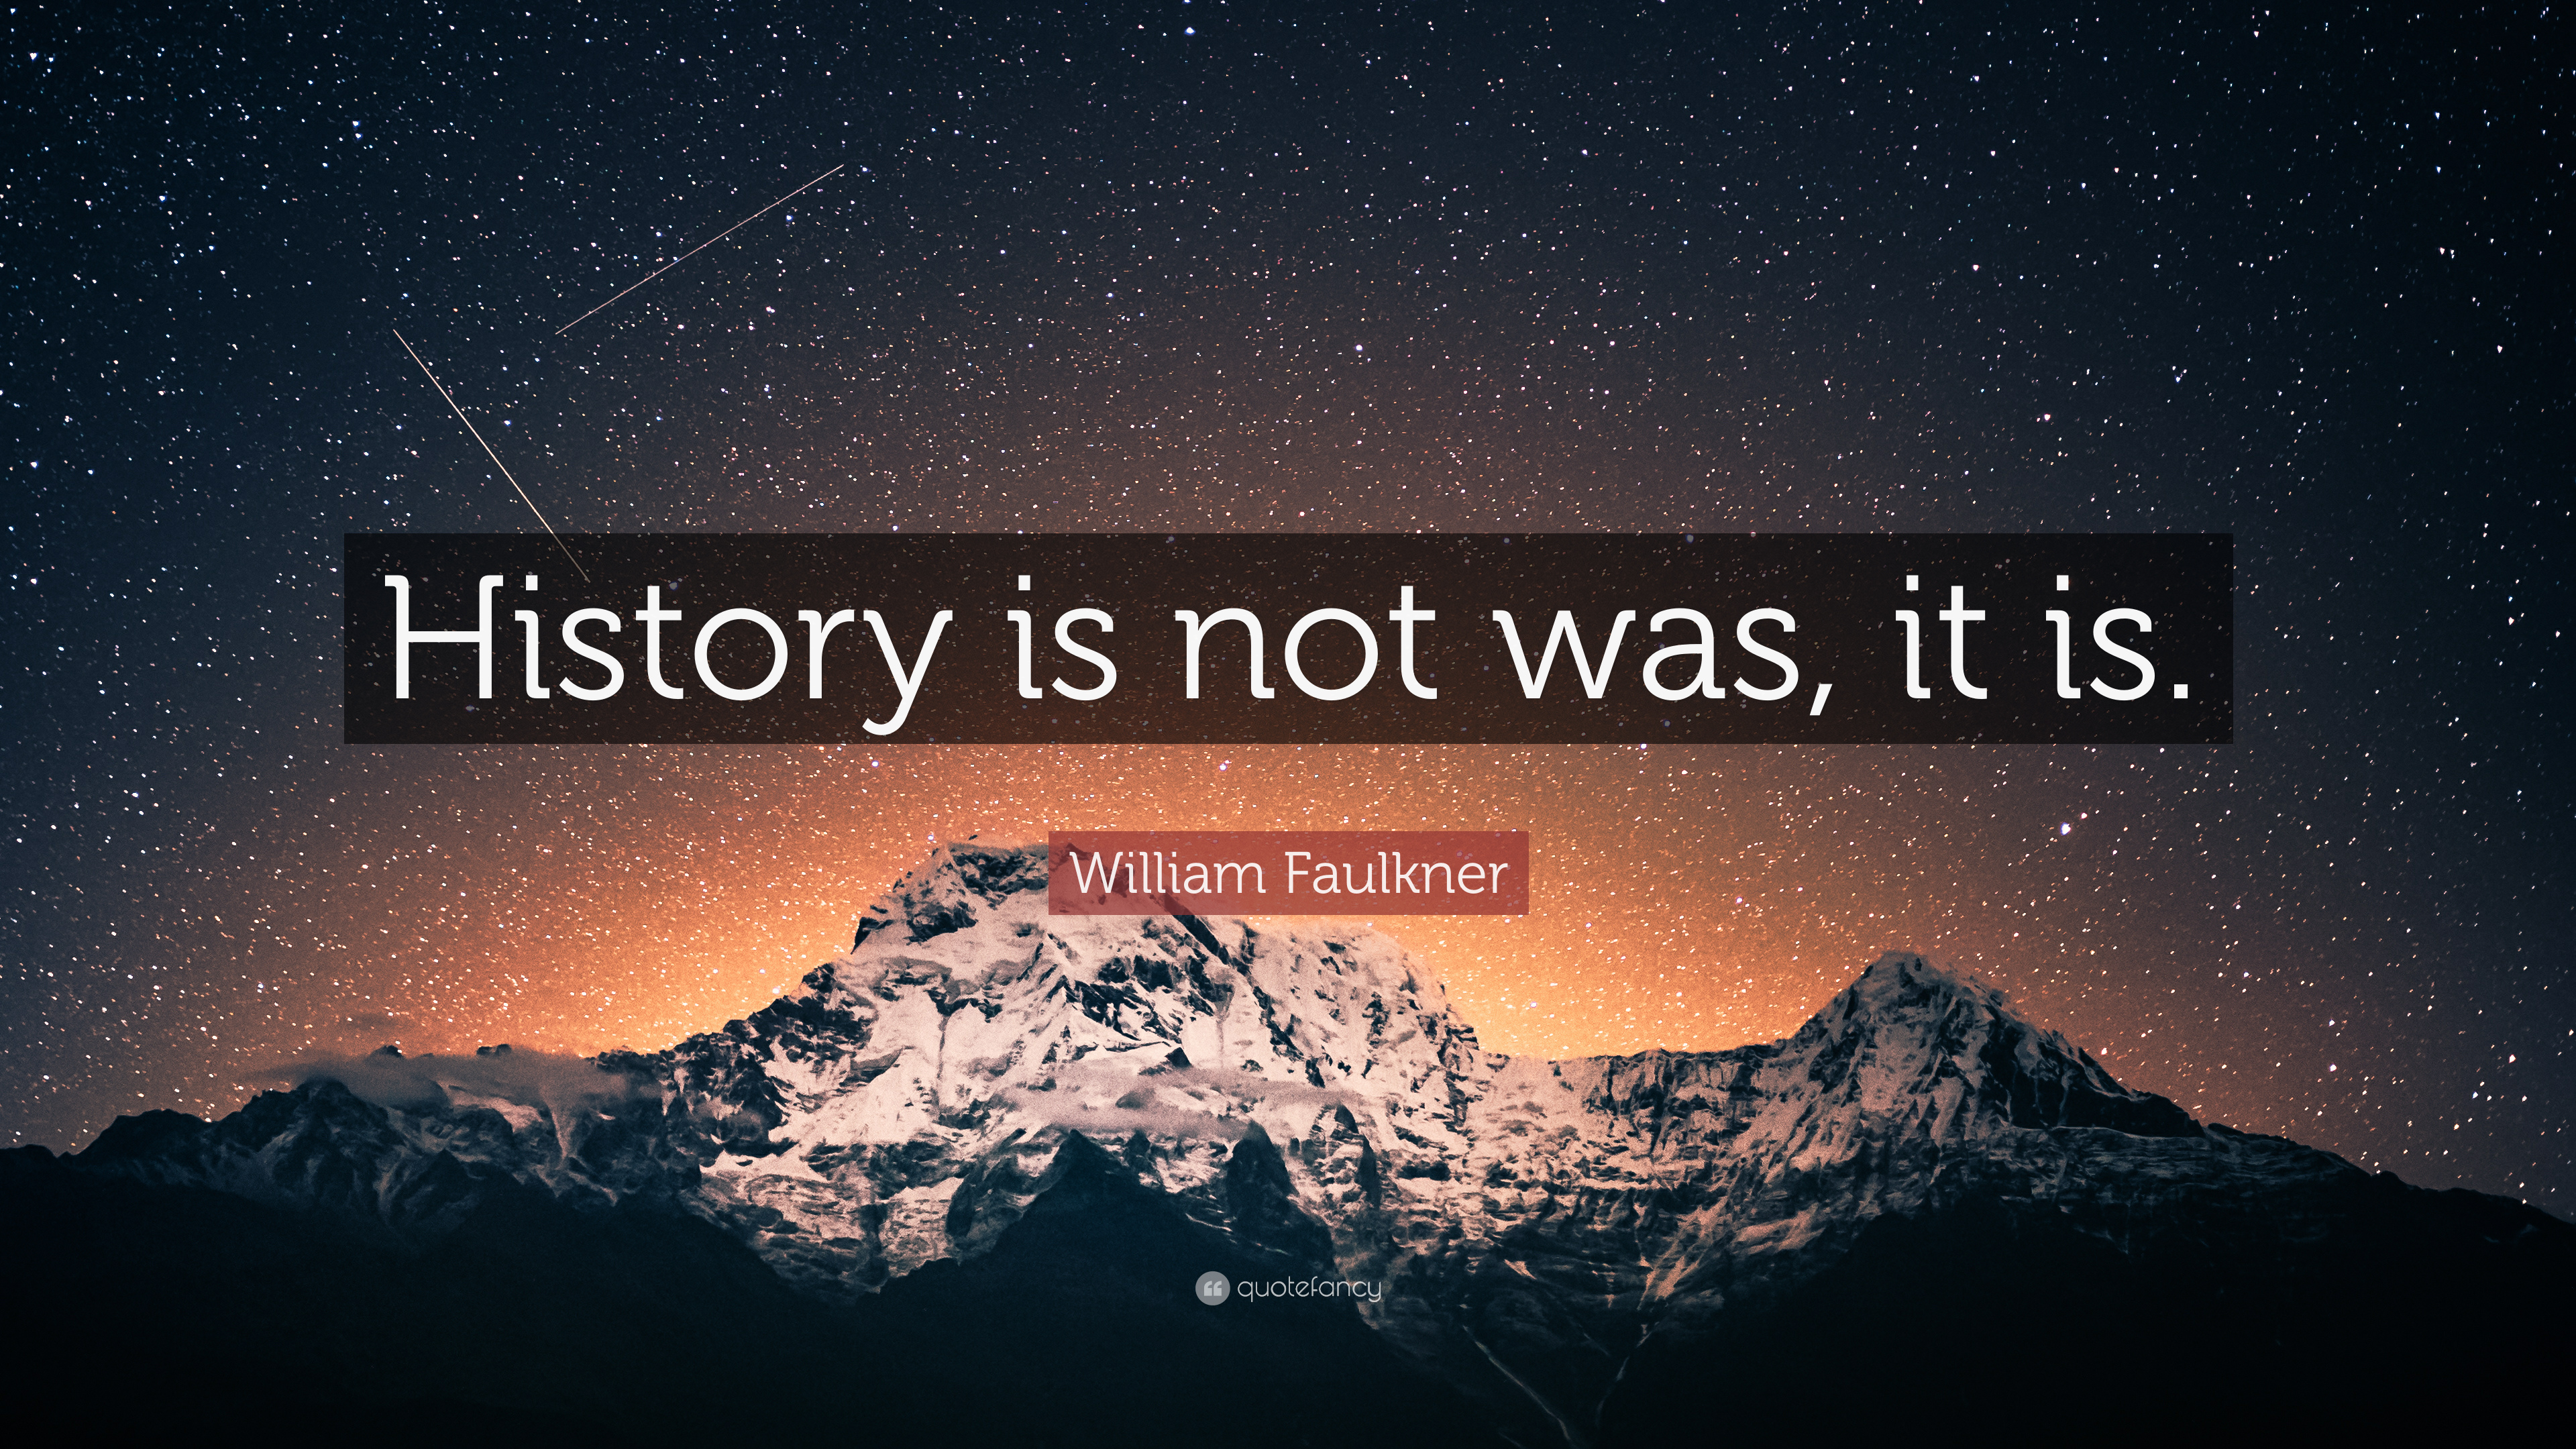 History Quotes (41 wallpapers) - Quotefancy